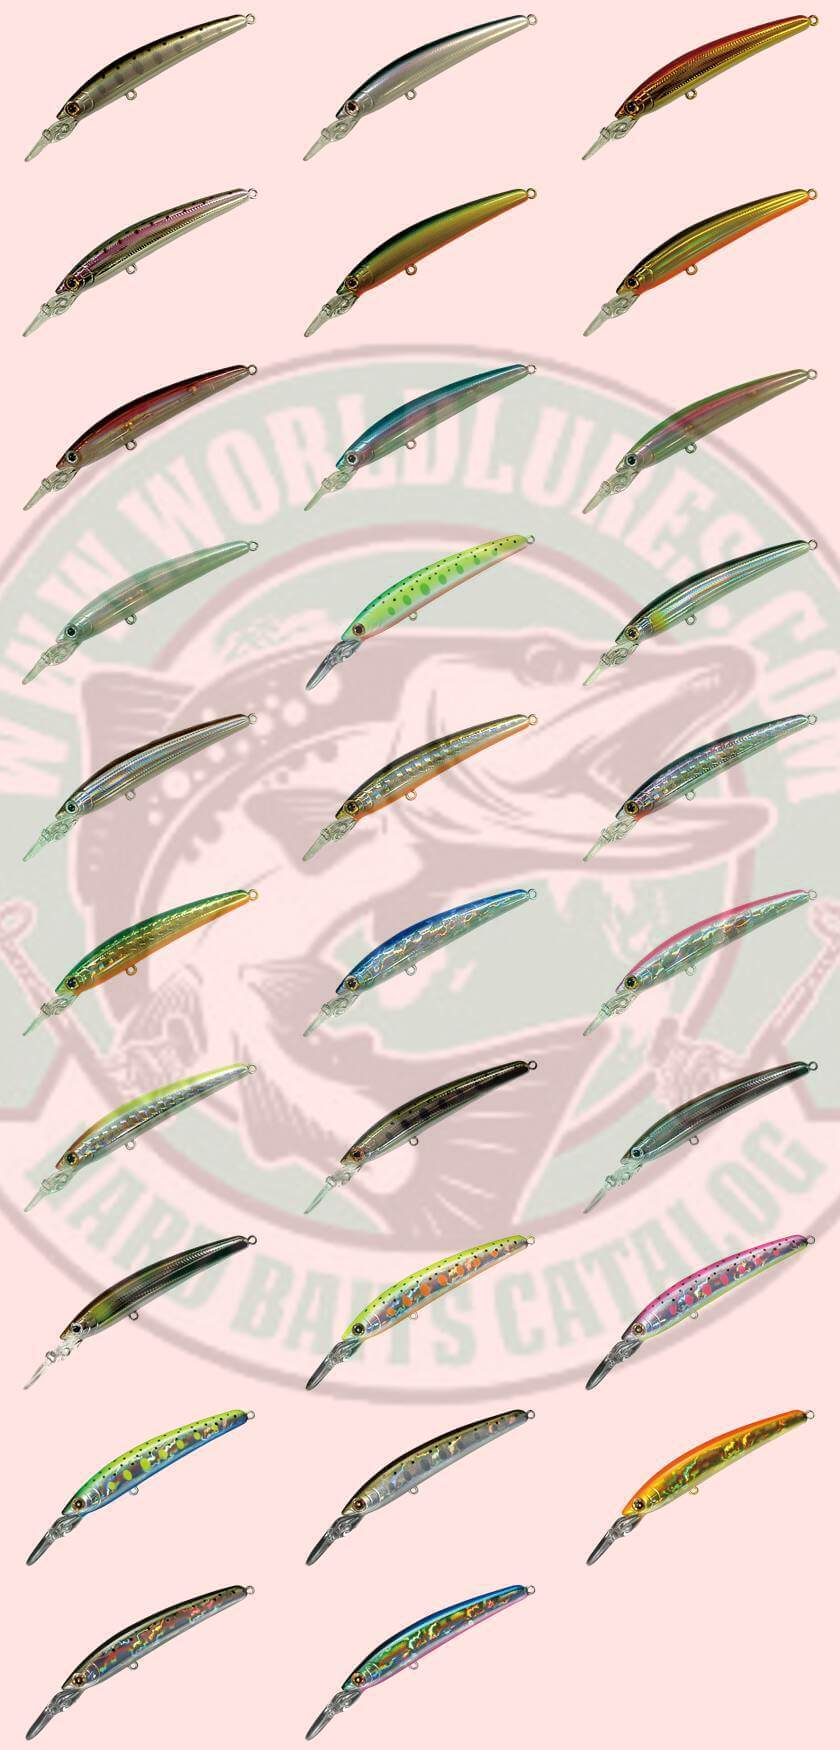 Lure Smith DD Panish all colors